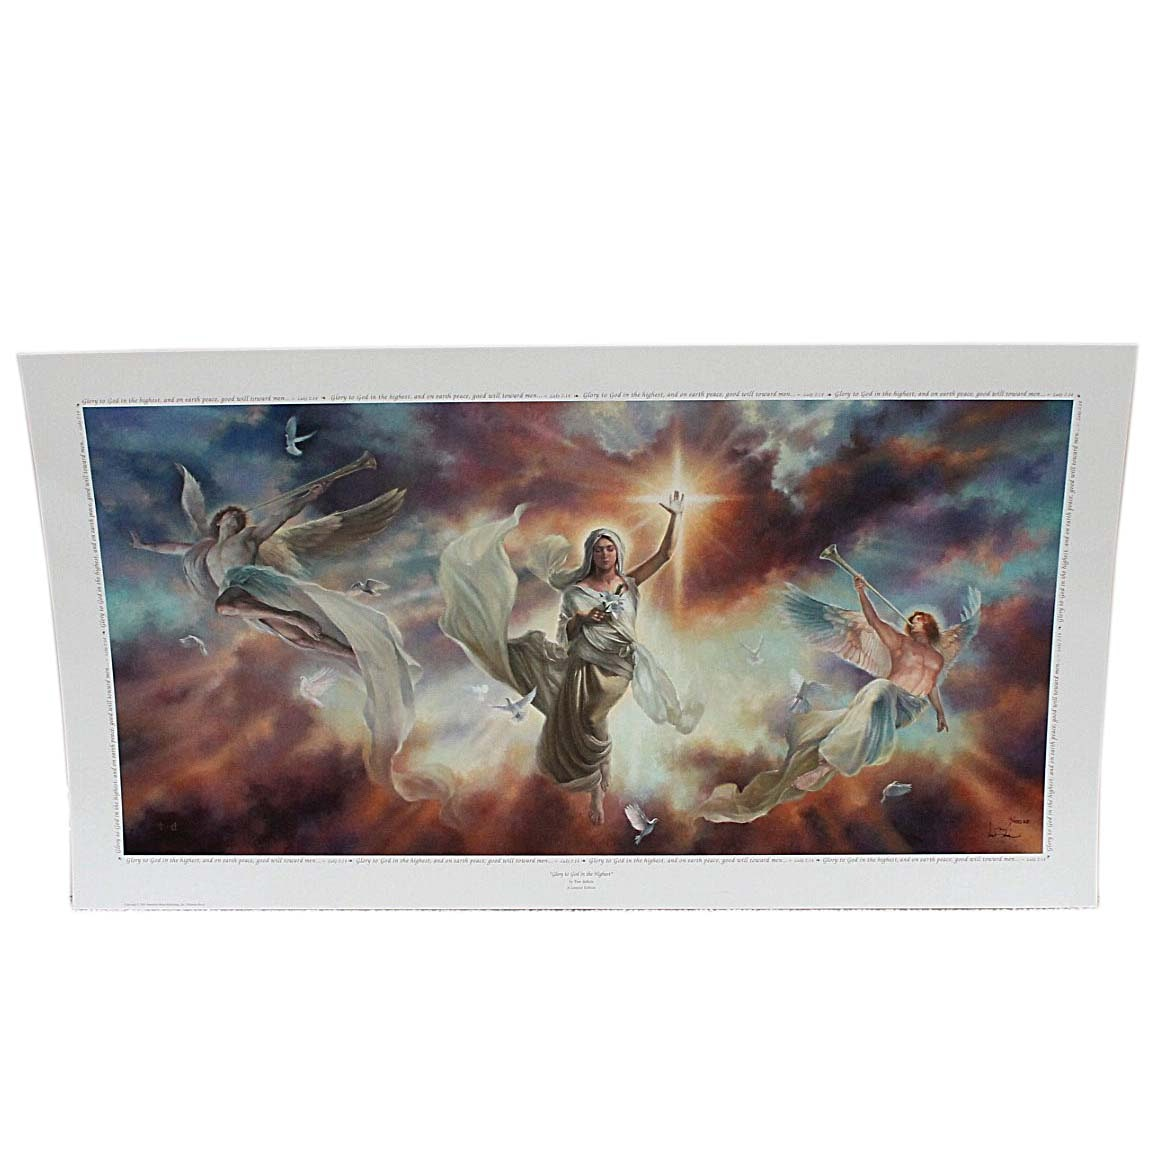 """Tom duBois Signed Limited Edition Offset Lithograph """"Glory To God In The Highest"""""""